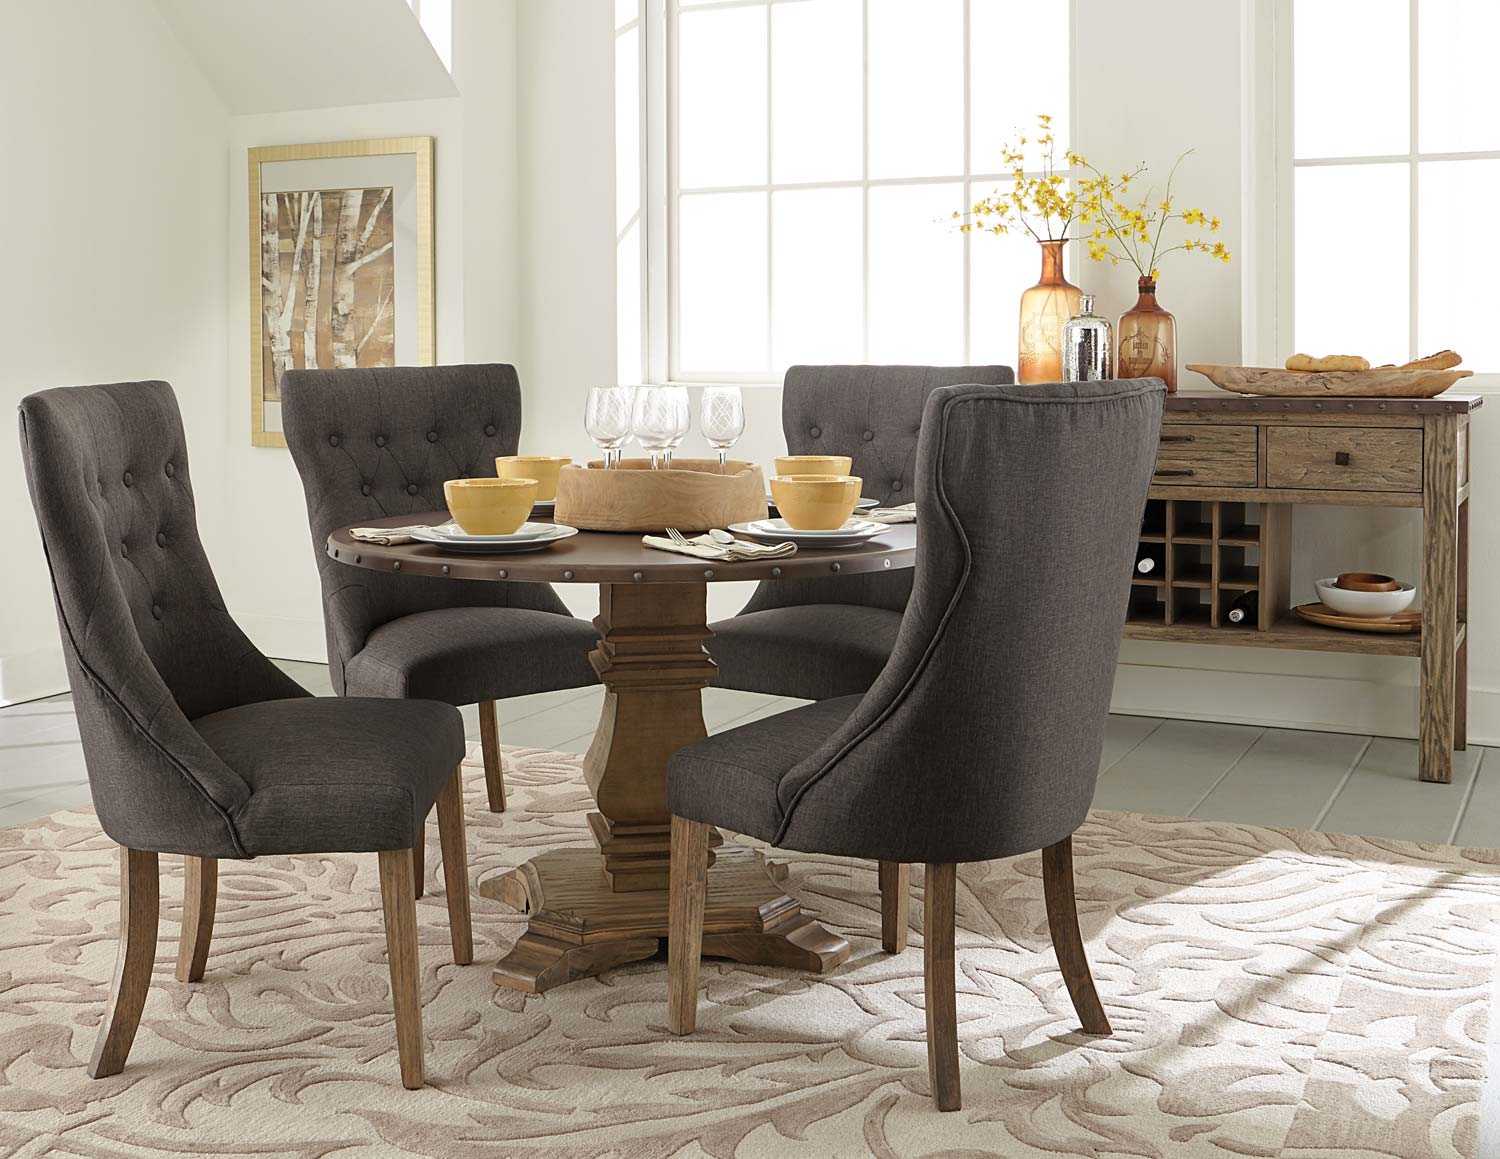 Homelegance Anna Claire Round Dining Set S2 - Driftwood/Zinc